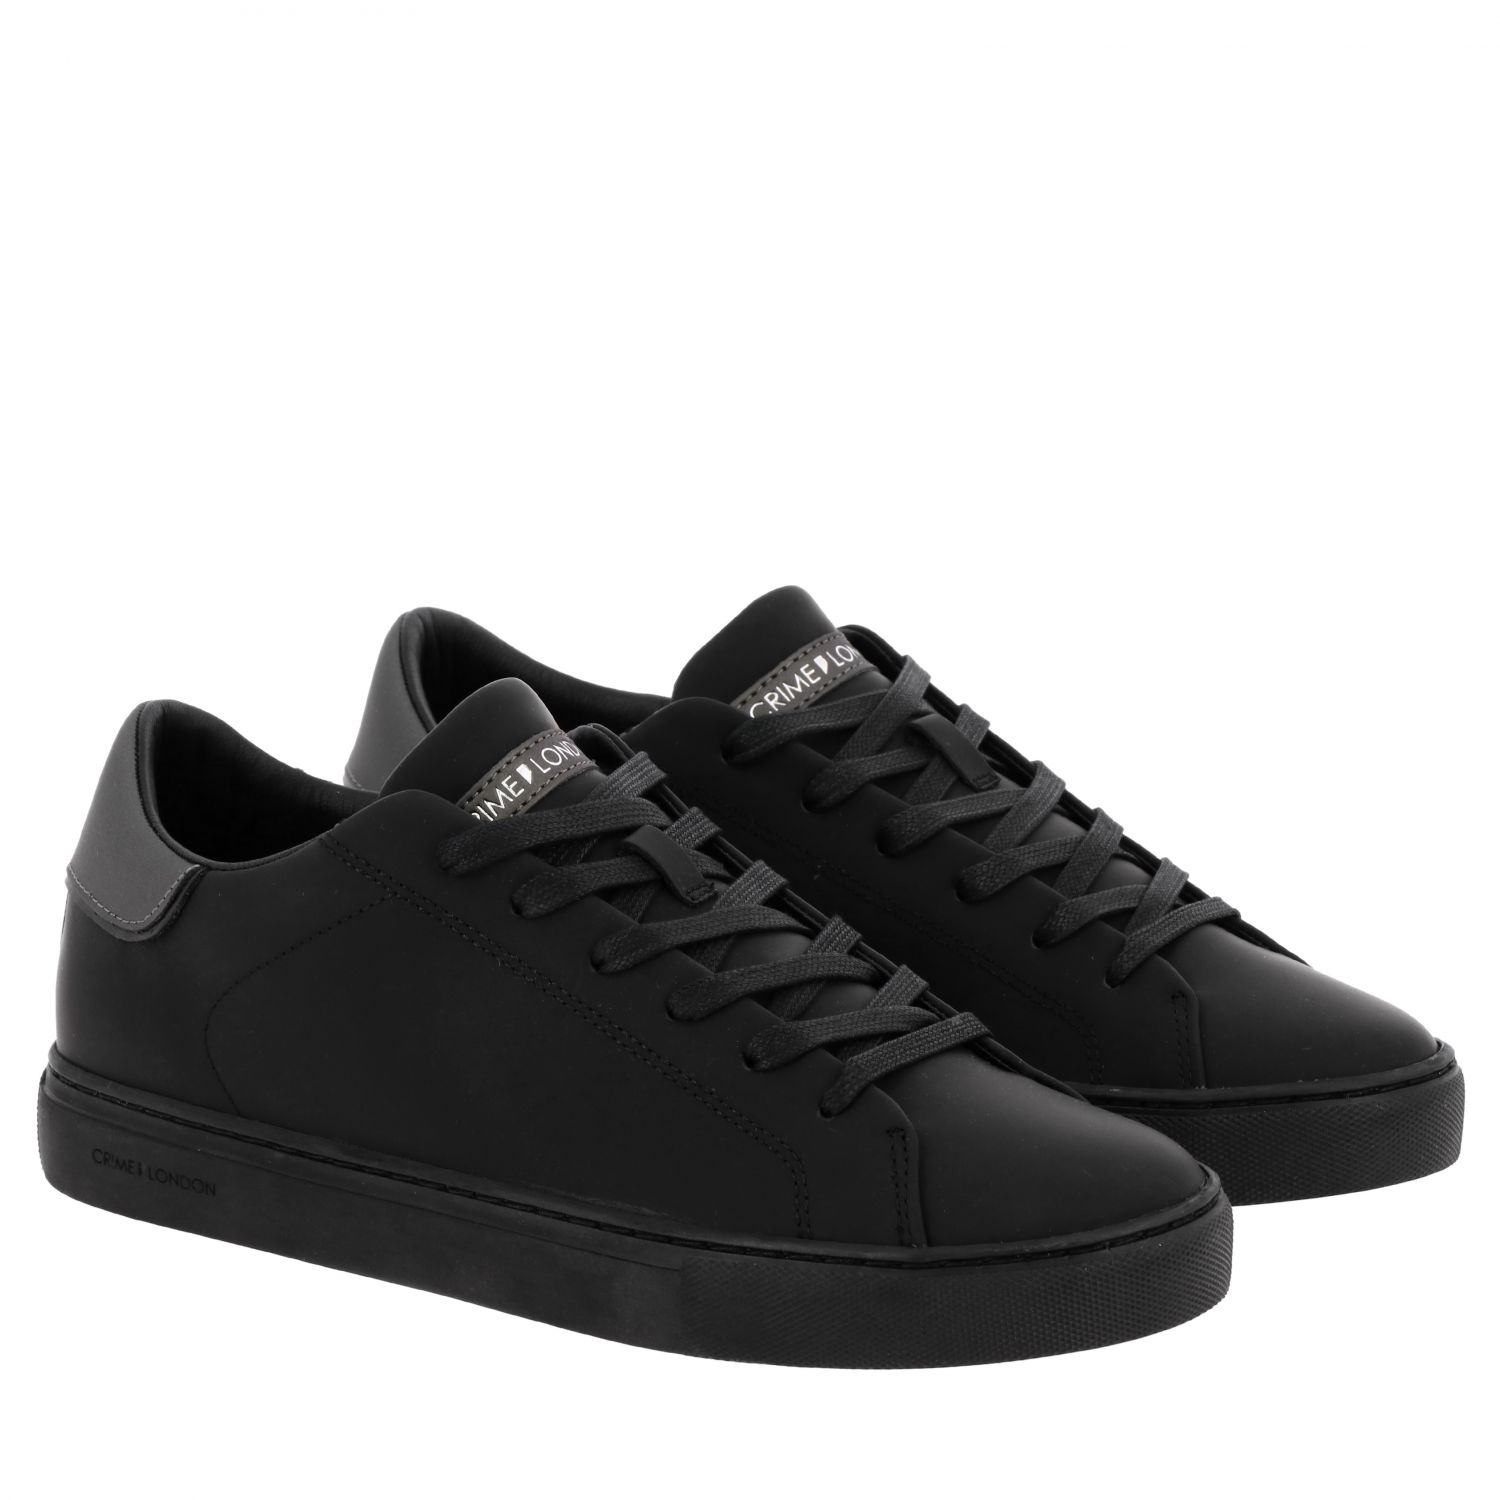 Sneakers Crime London: Shoes men Crime London black 2